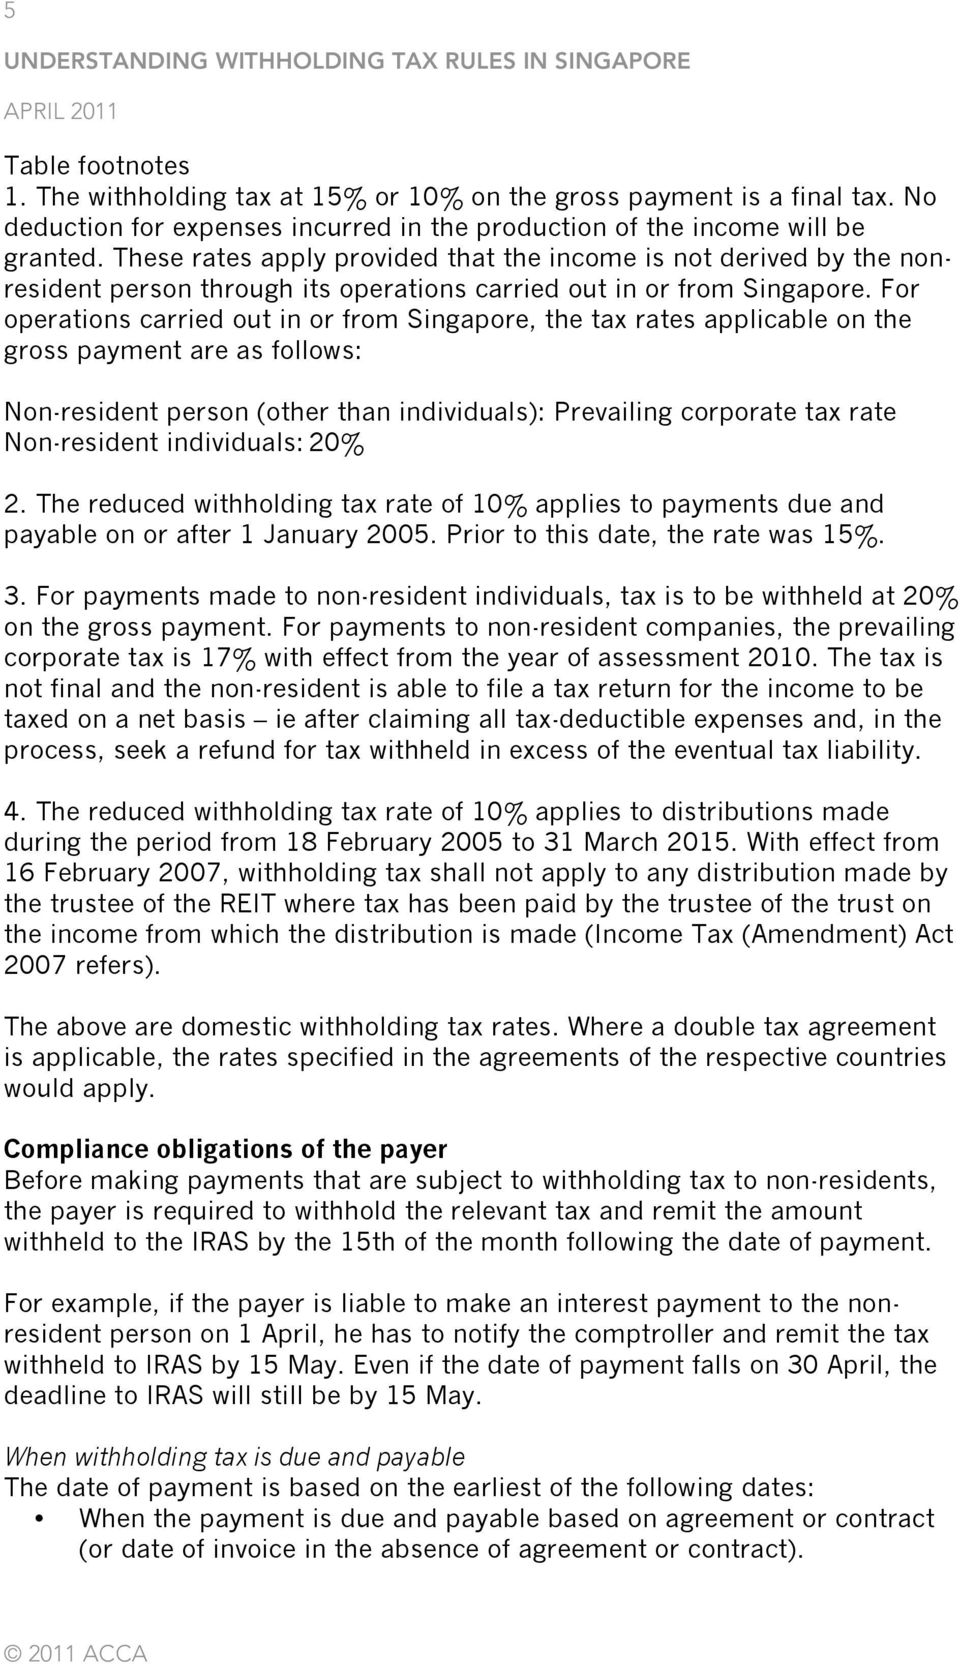 For operations carried out in or from Singapore, the tax rates applicable on the gross payment are as follows: Non-resident person (other than individuals): Prevailing corporate tax rate Non-resident